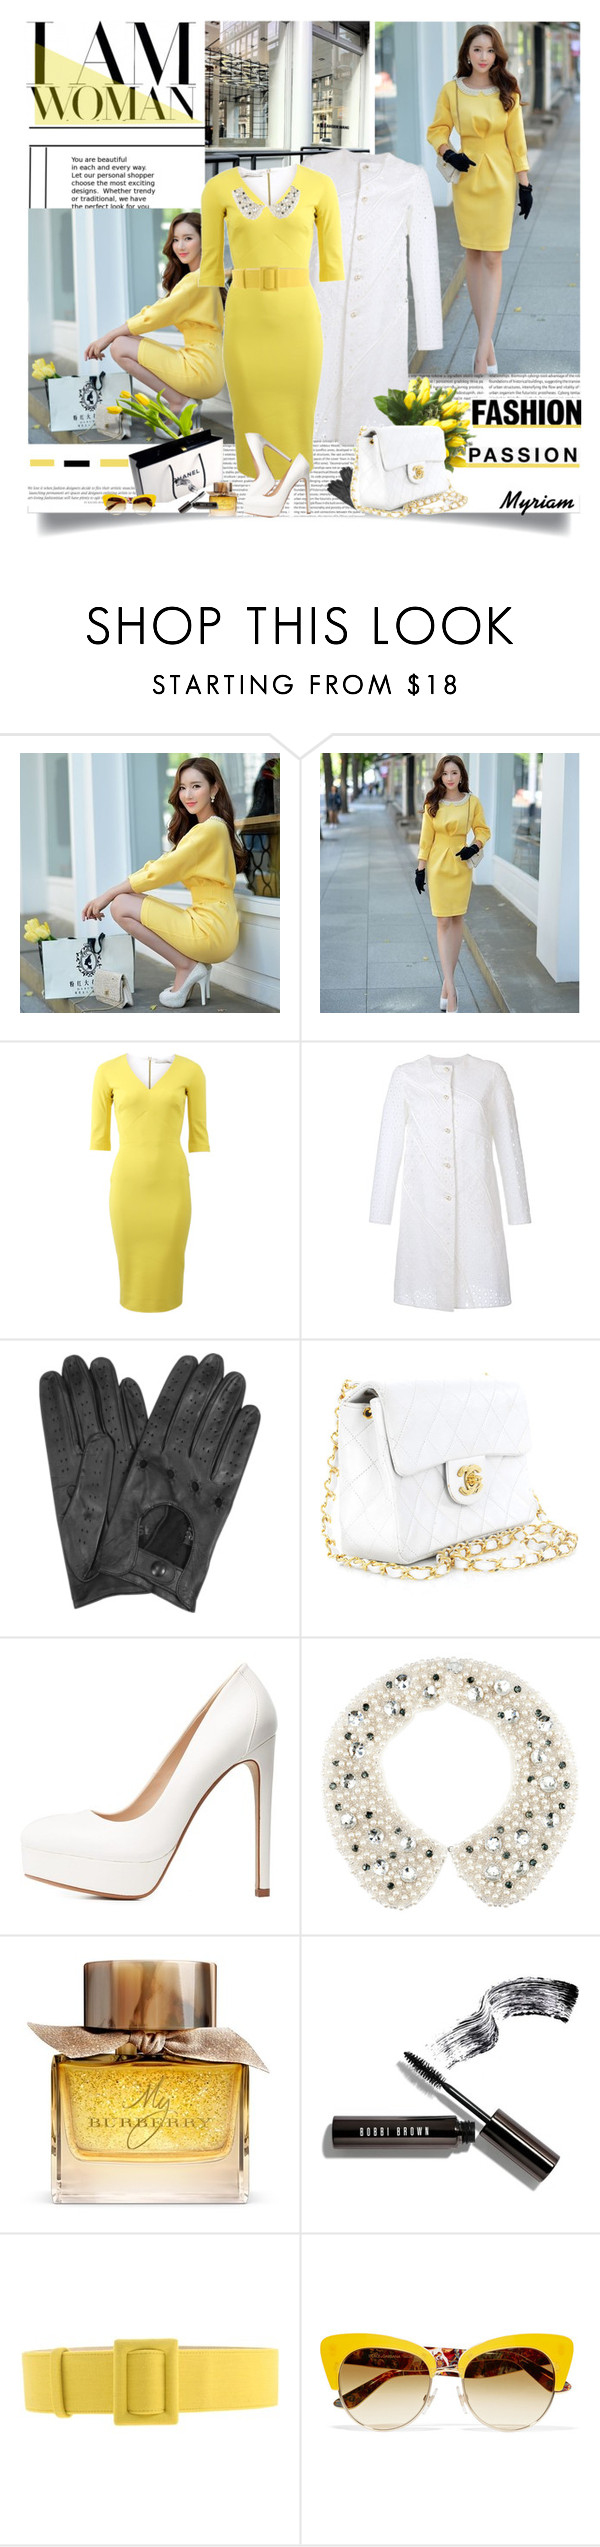 """""""fashion"""" by lovemeforthelife-myriam ❤ liked on Polyvore featuring Oris, Dabuwawa, Victoria Beckham, HUISHAN ZHANG, Forzieri, Chanel, ANNA, Charlotte Russe, H&M and Burberry"""